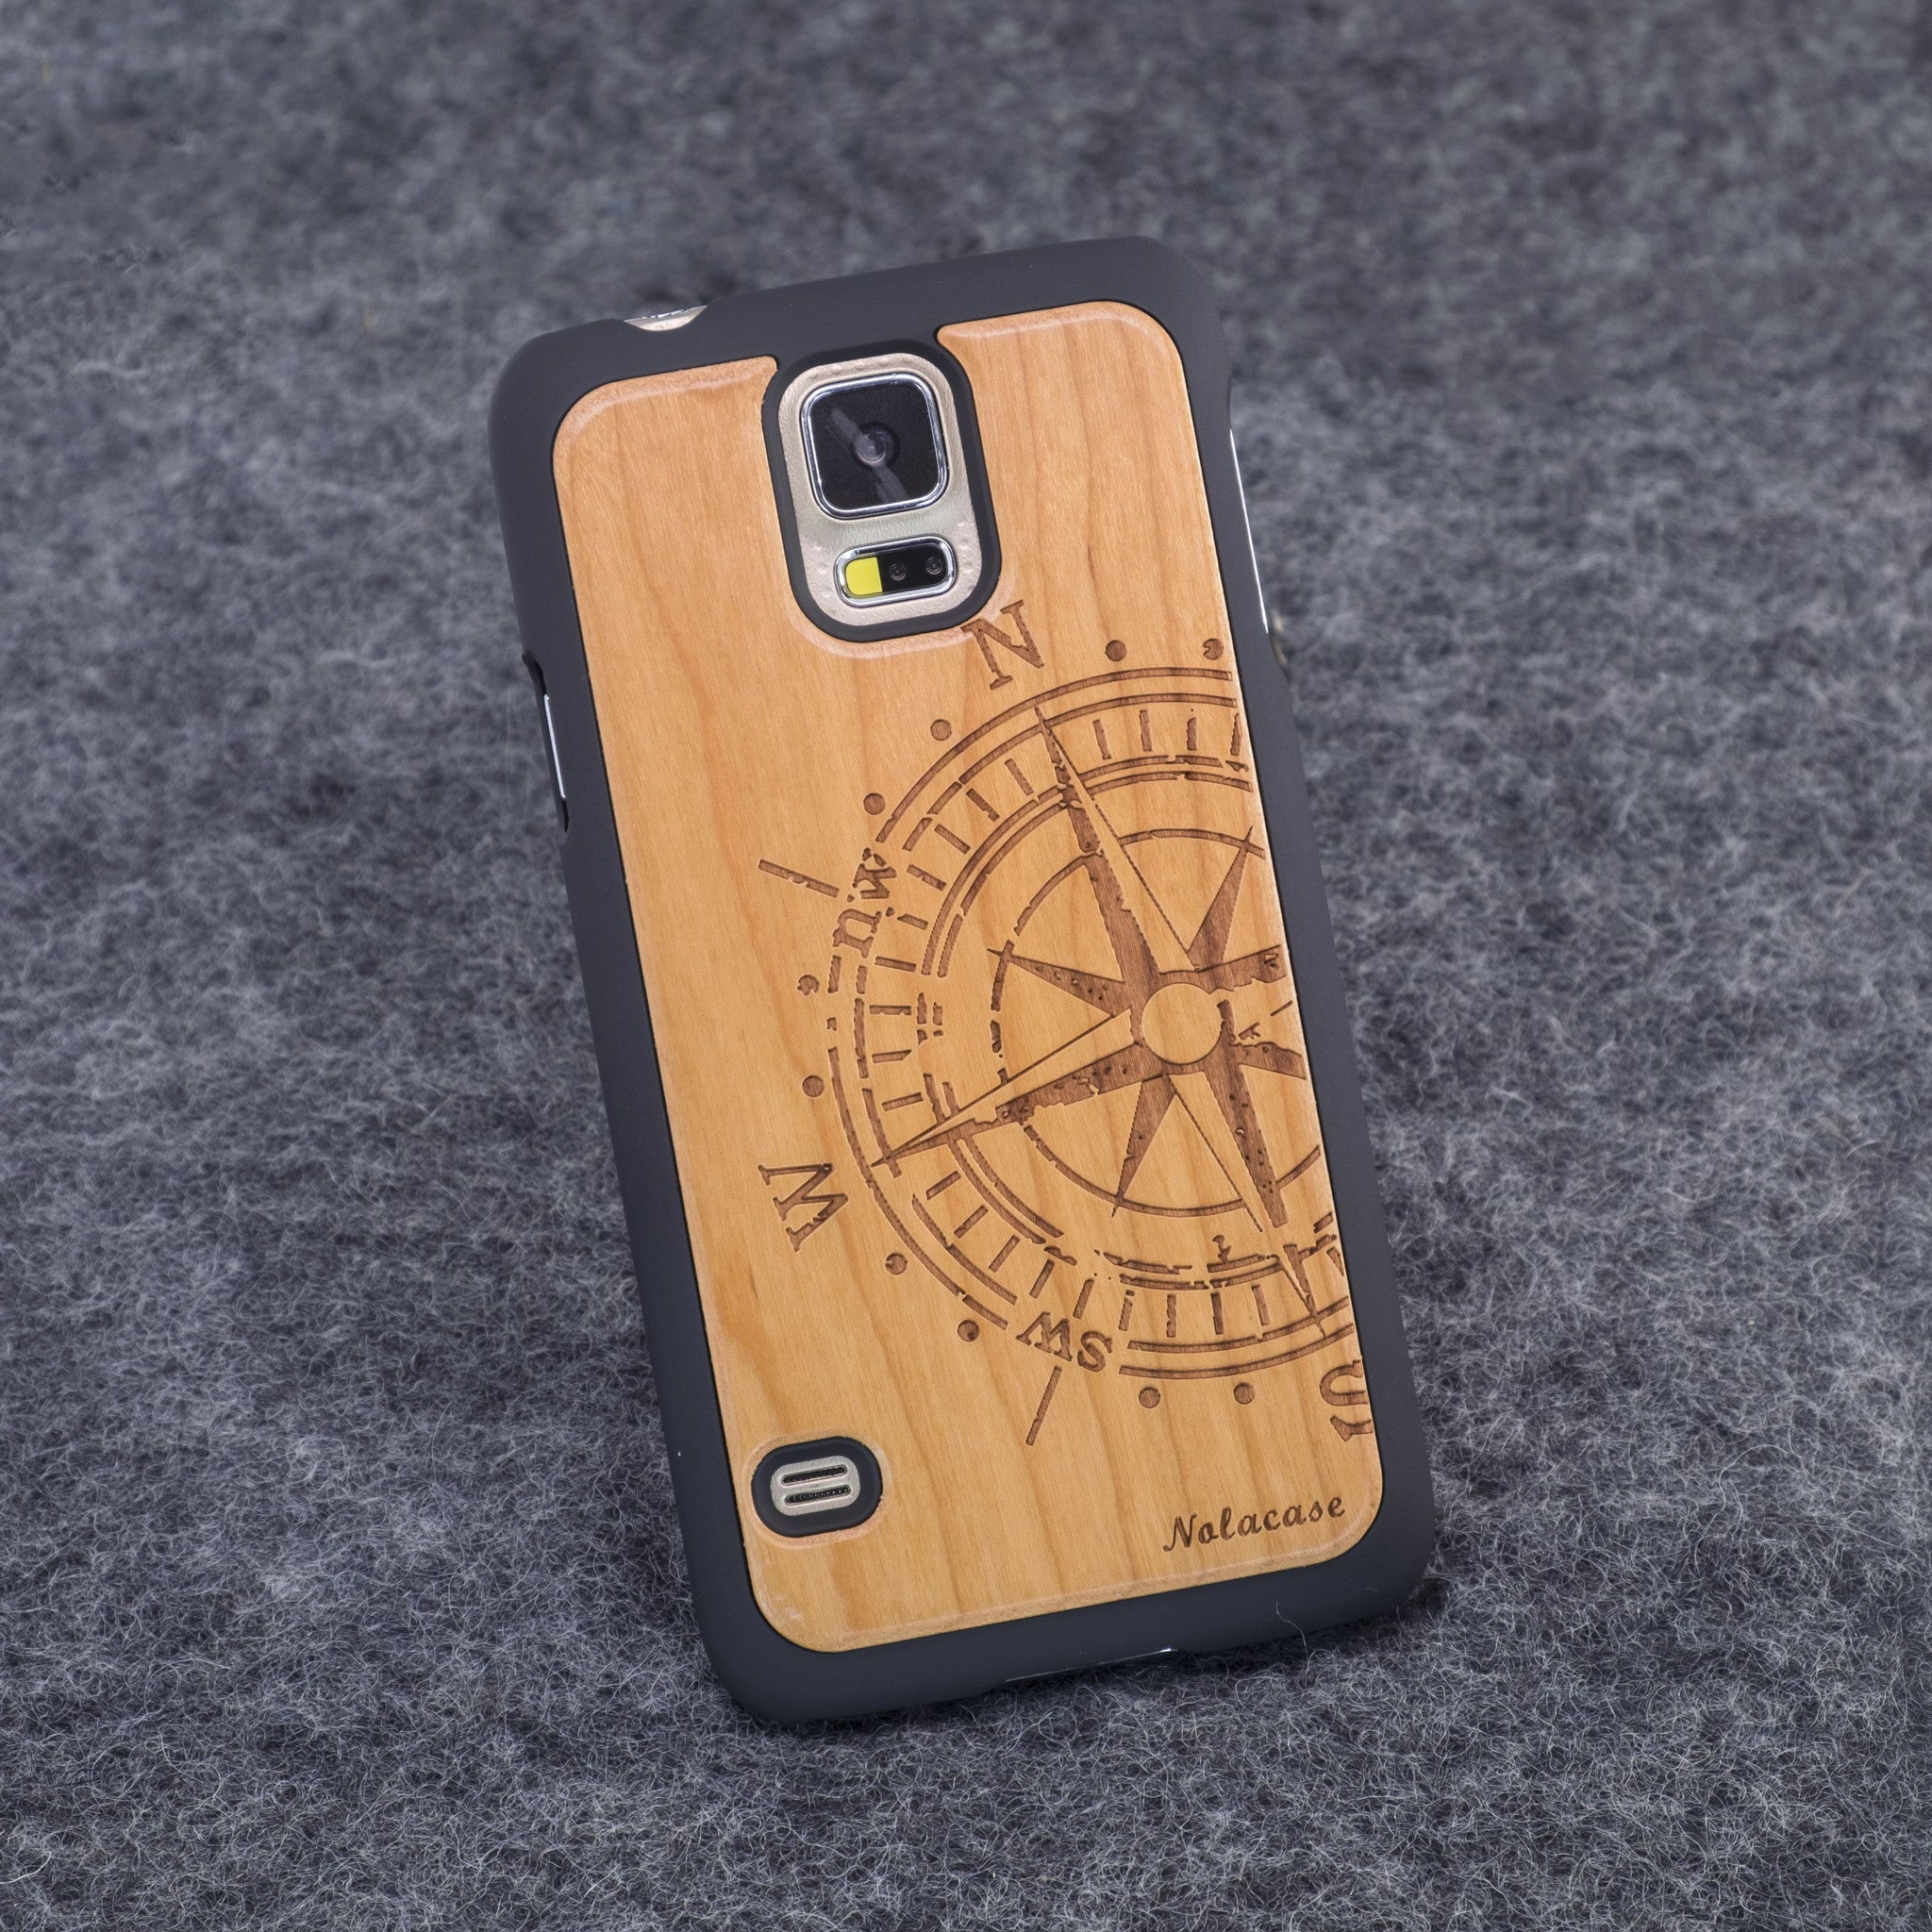 Samsung S5 Big Compass Slim Wood Case - NOLACASE